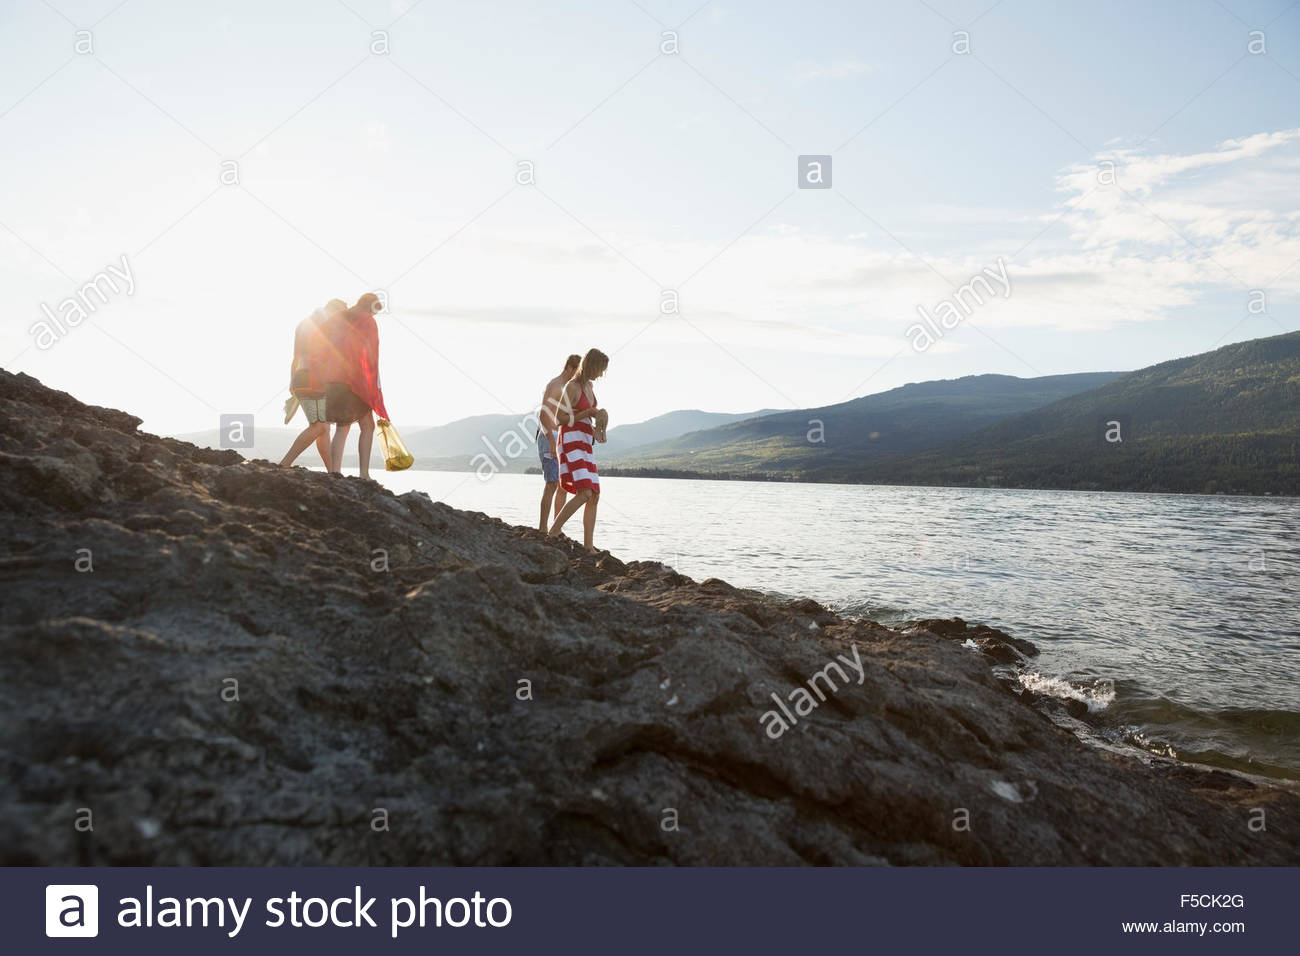 Young friends walking on rocks at sunny lake - Stock Image